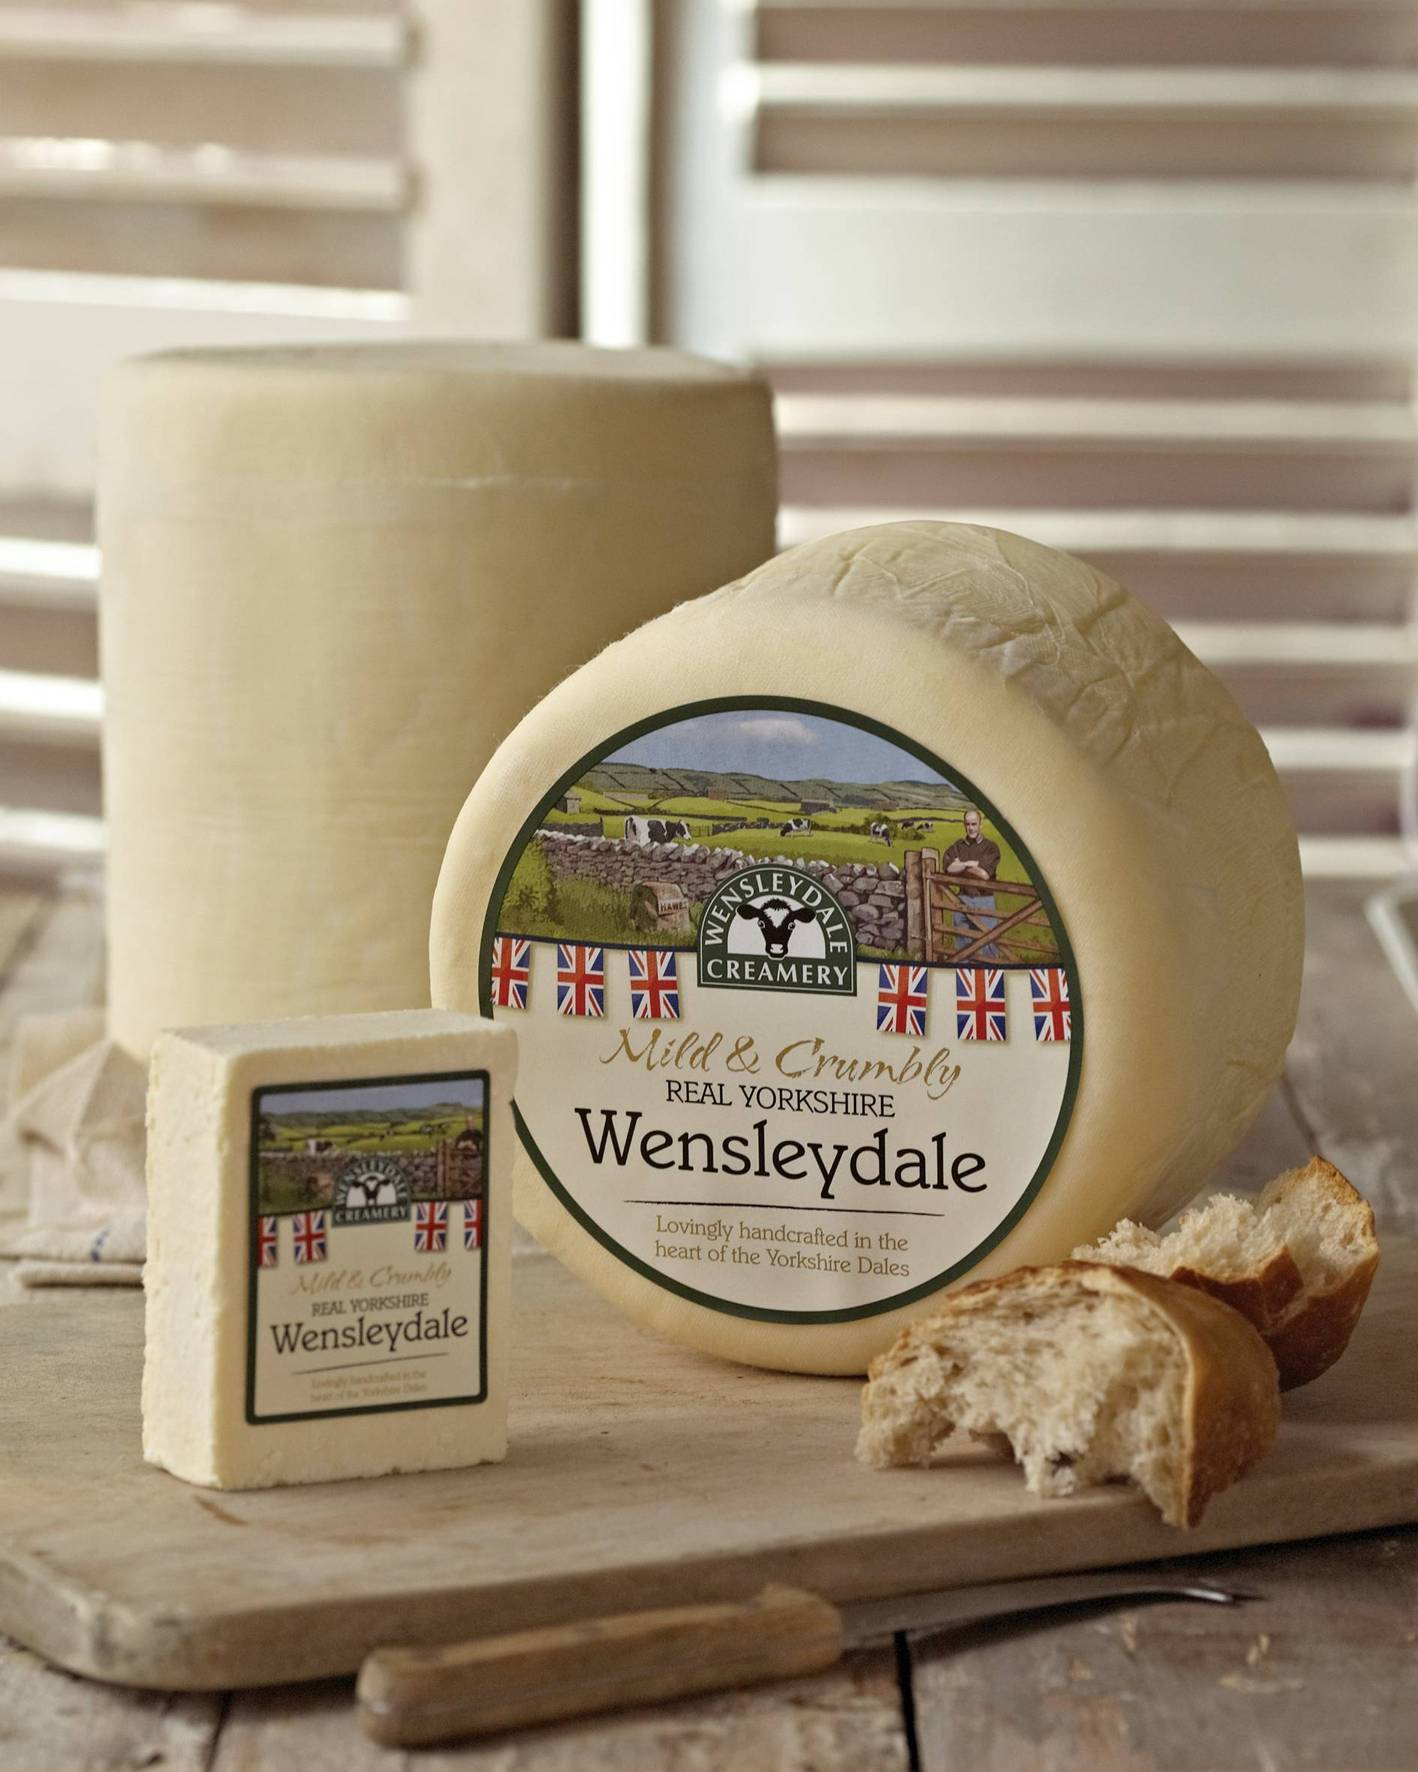 Nostalgic New Look for Wensleydale Creamery